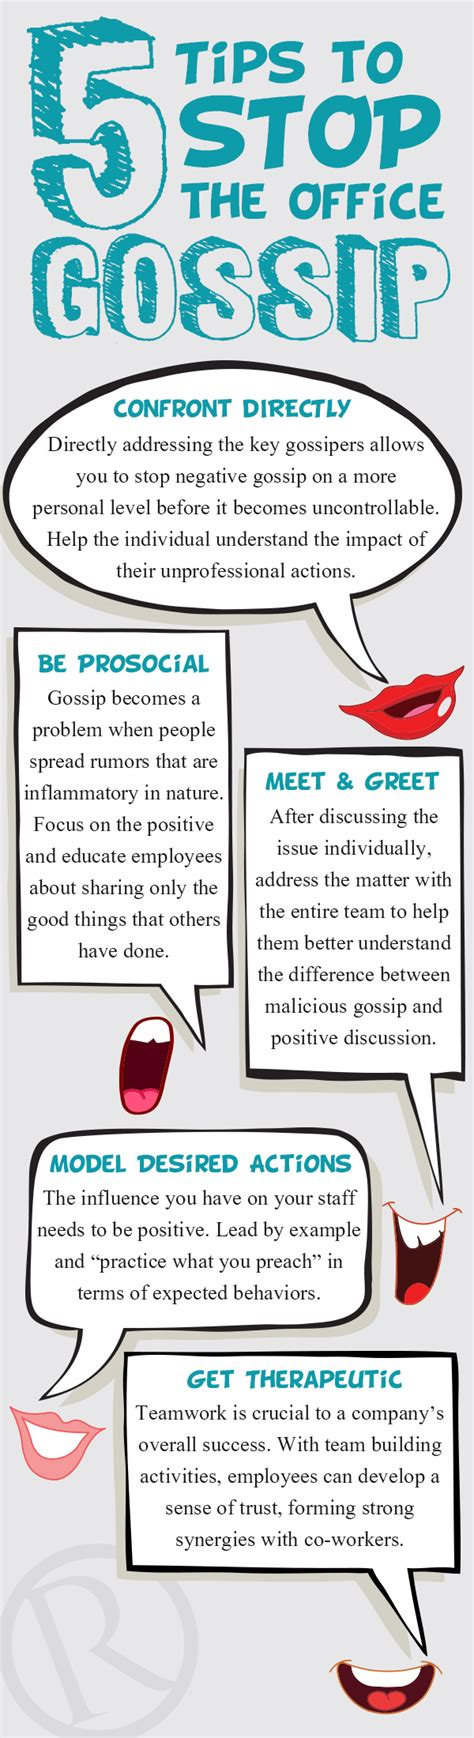 how to stop the gossip 5 tips to stop the office gossip infographic rymax